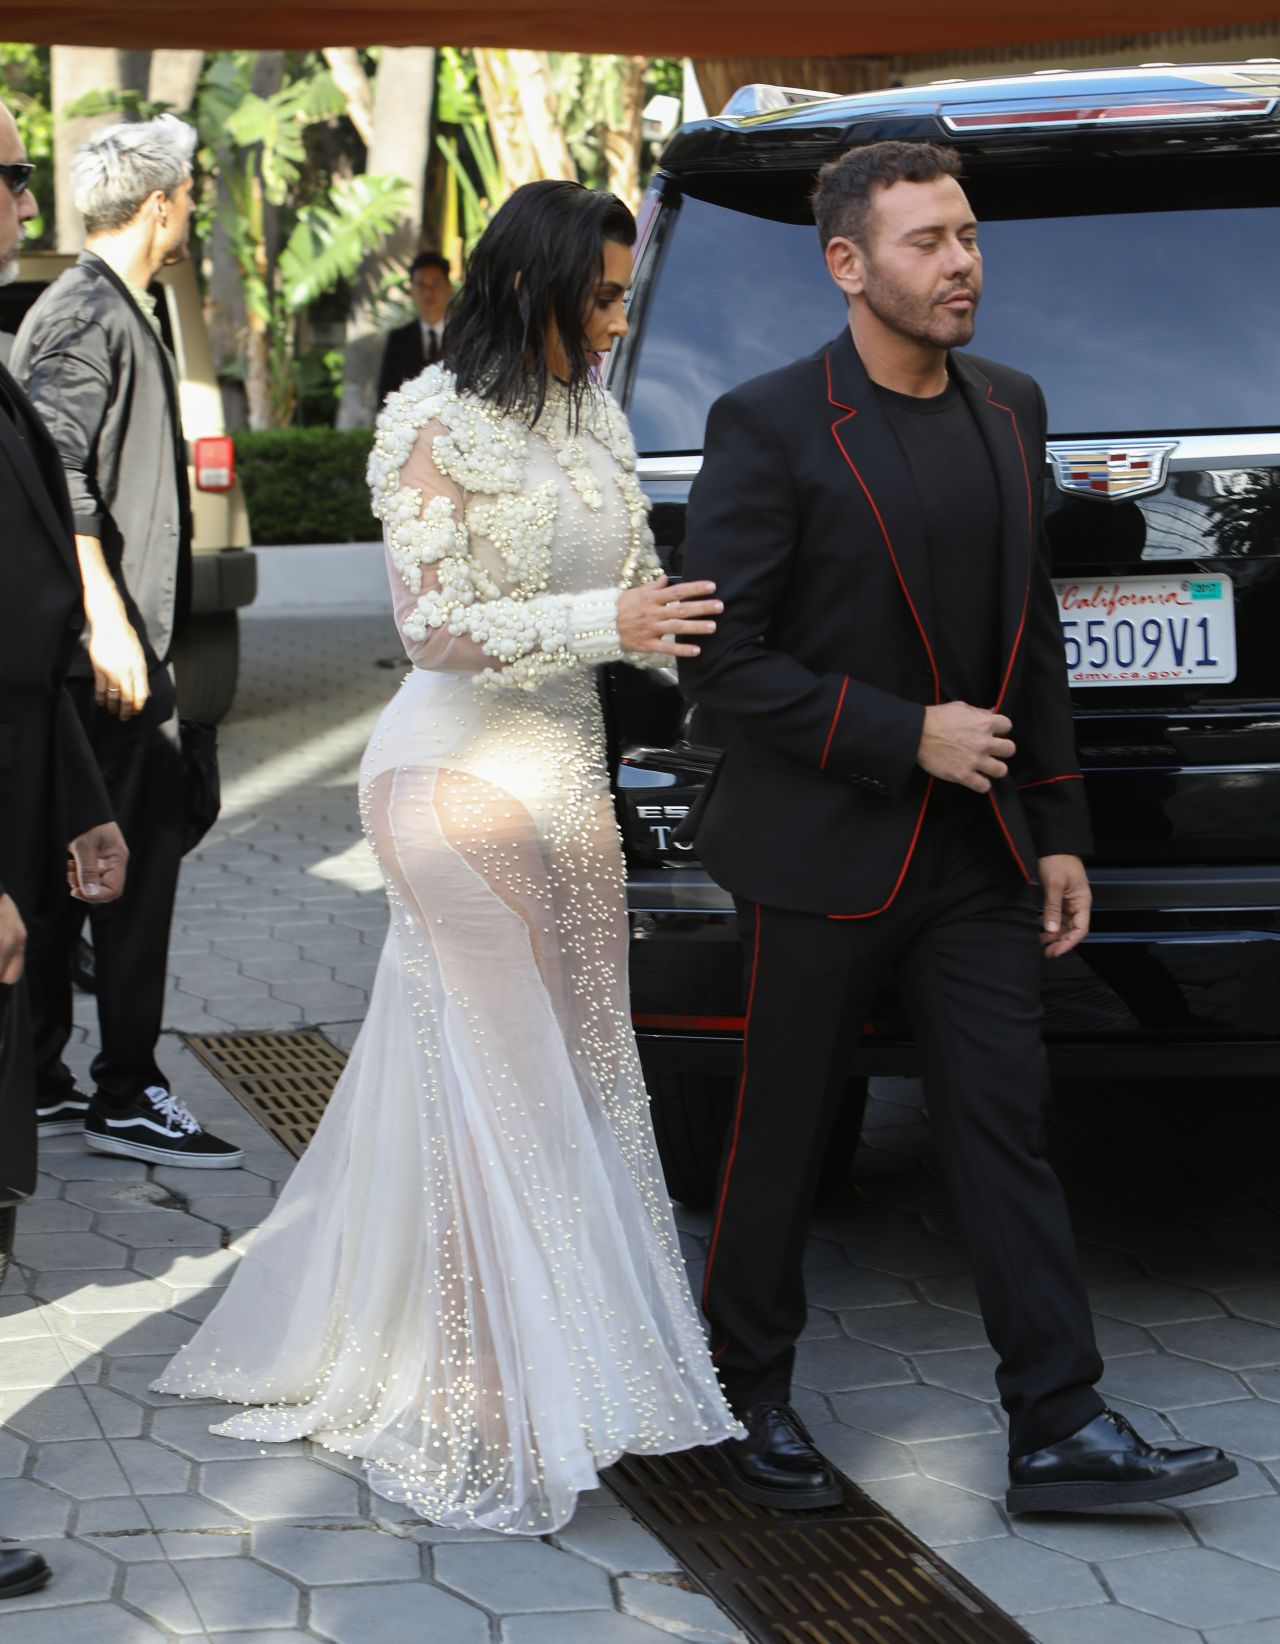 Kim kardashian in sheer givenchy gown at dinner with mert alas naked (31 photo), Cleavage Celebrites photo